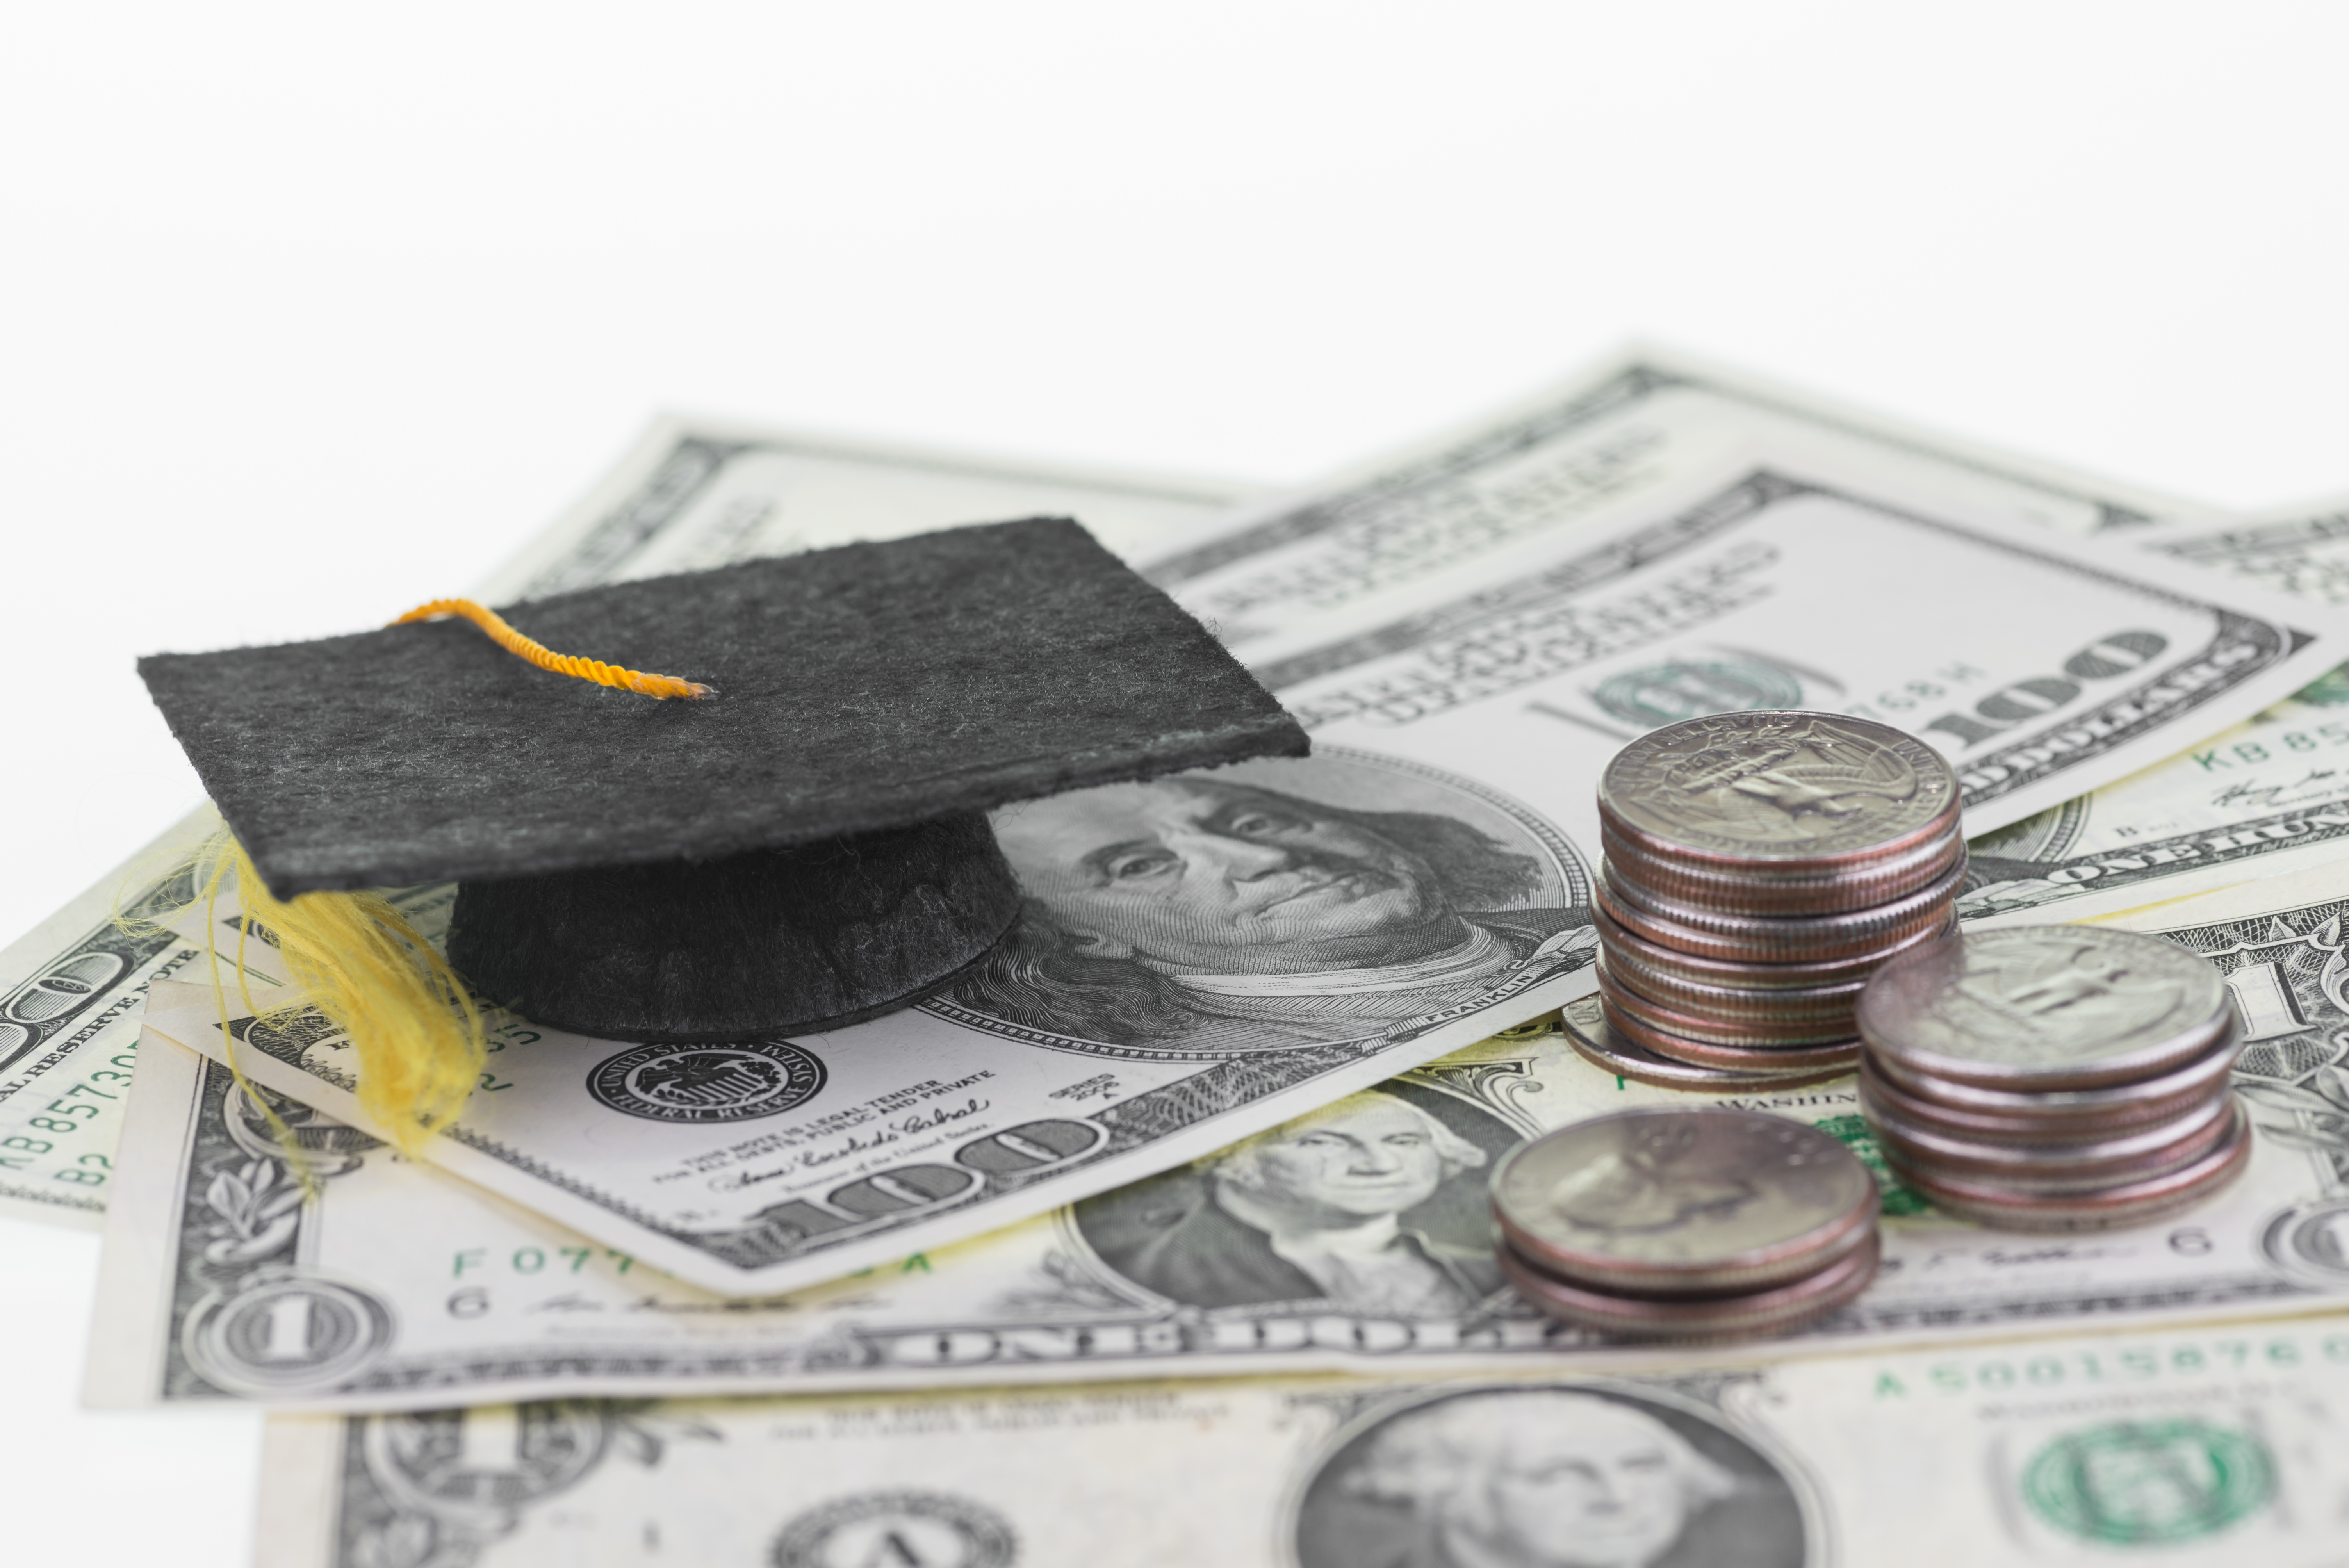 Graduation hat and coins laying on top of dollar bills.